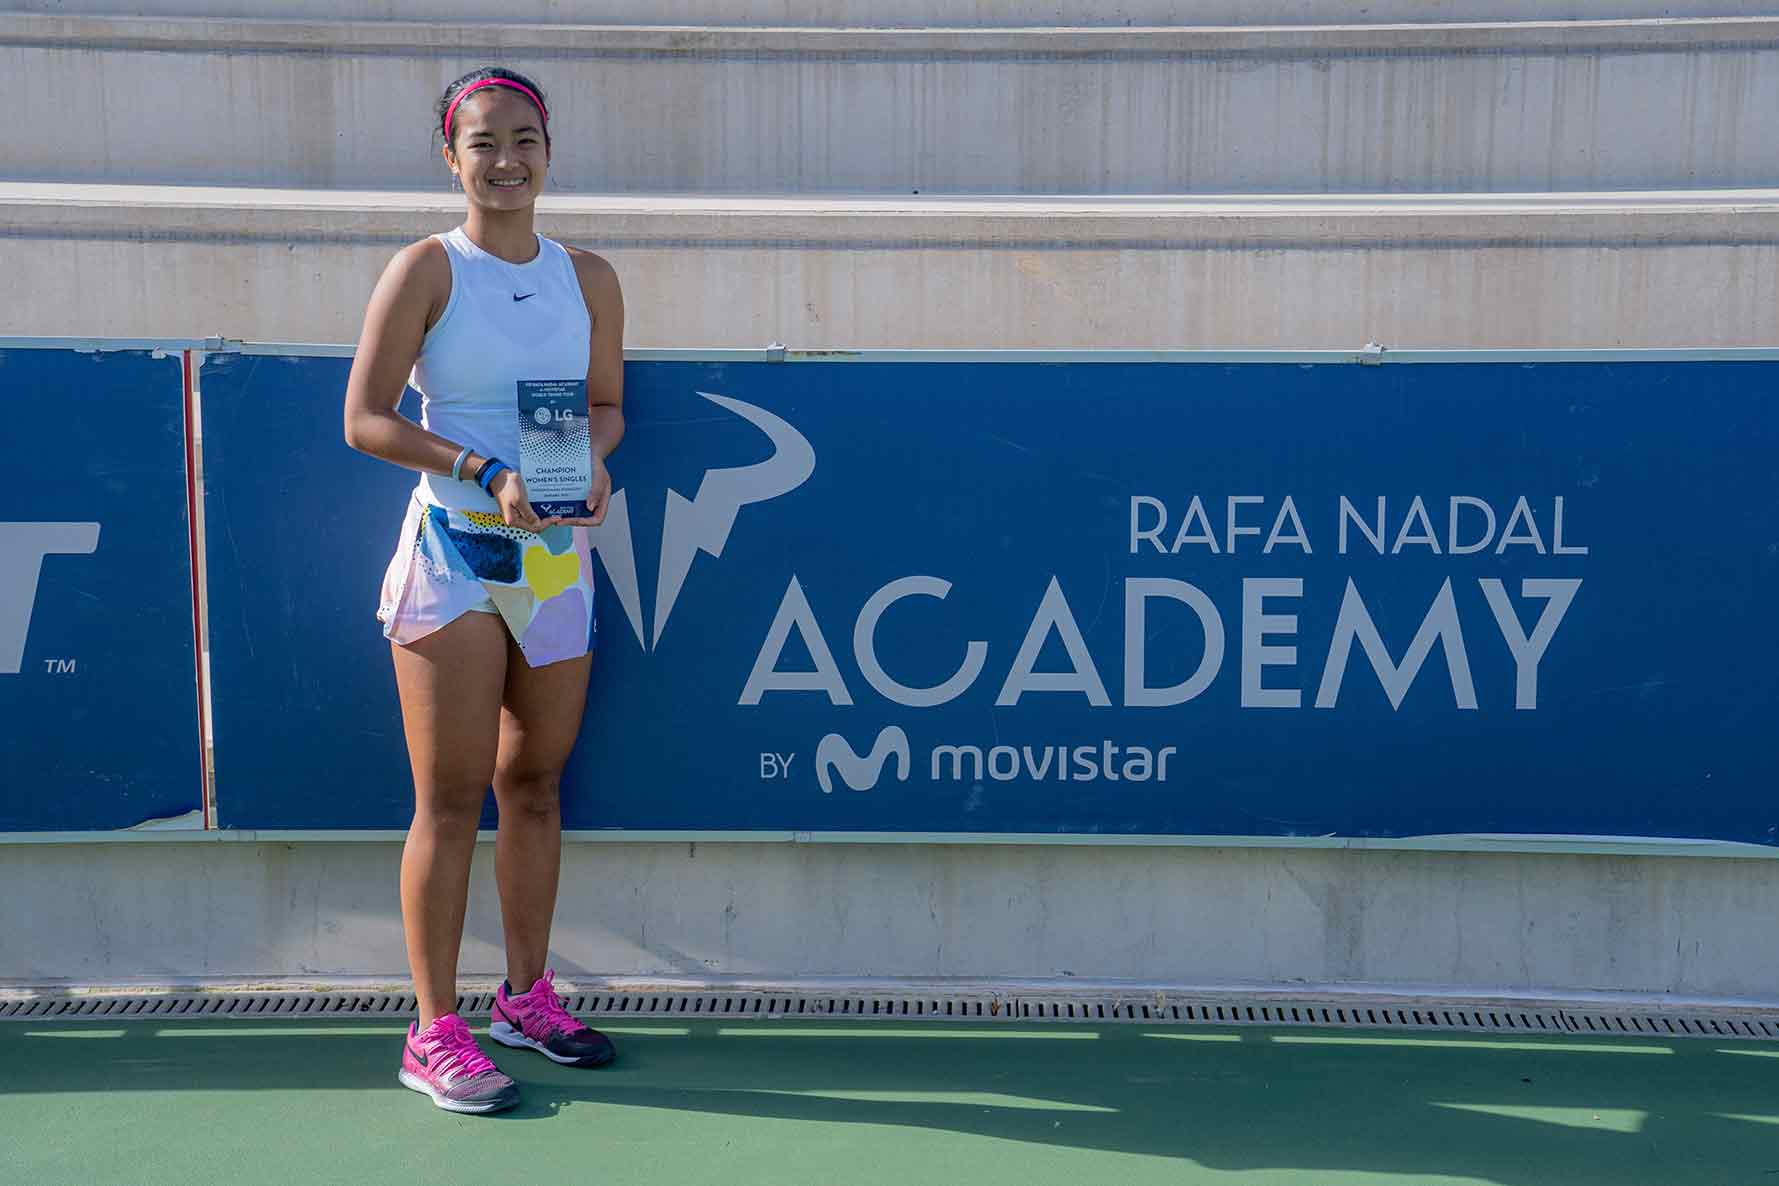 Alex Eala crowned champion at the Rafa Nadal Academy by Movistar